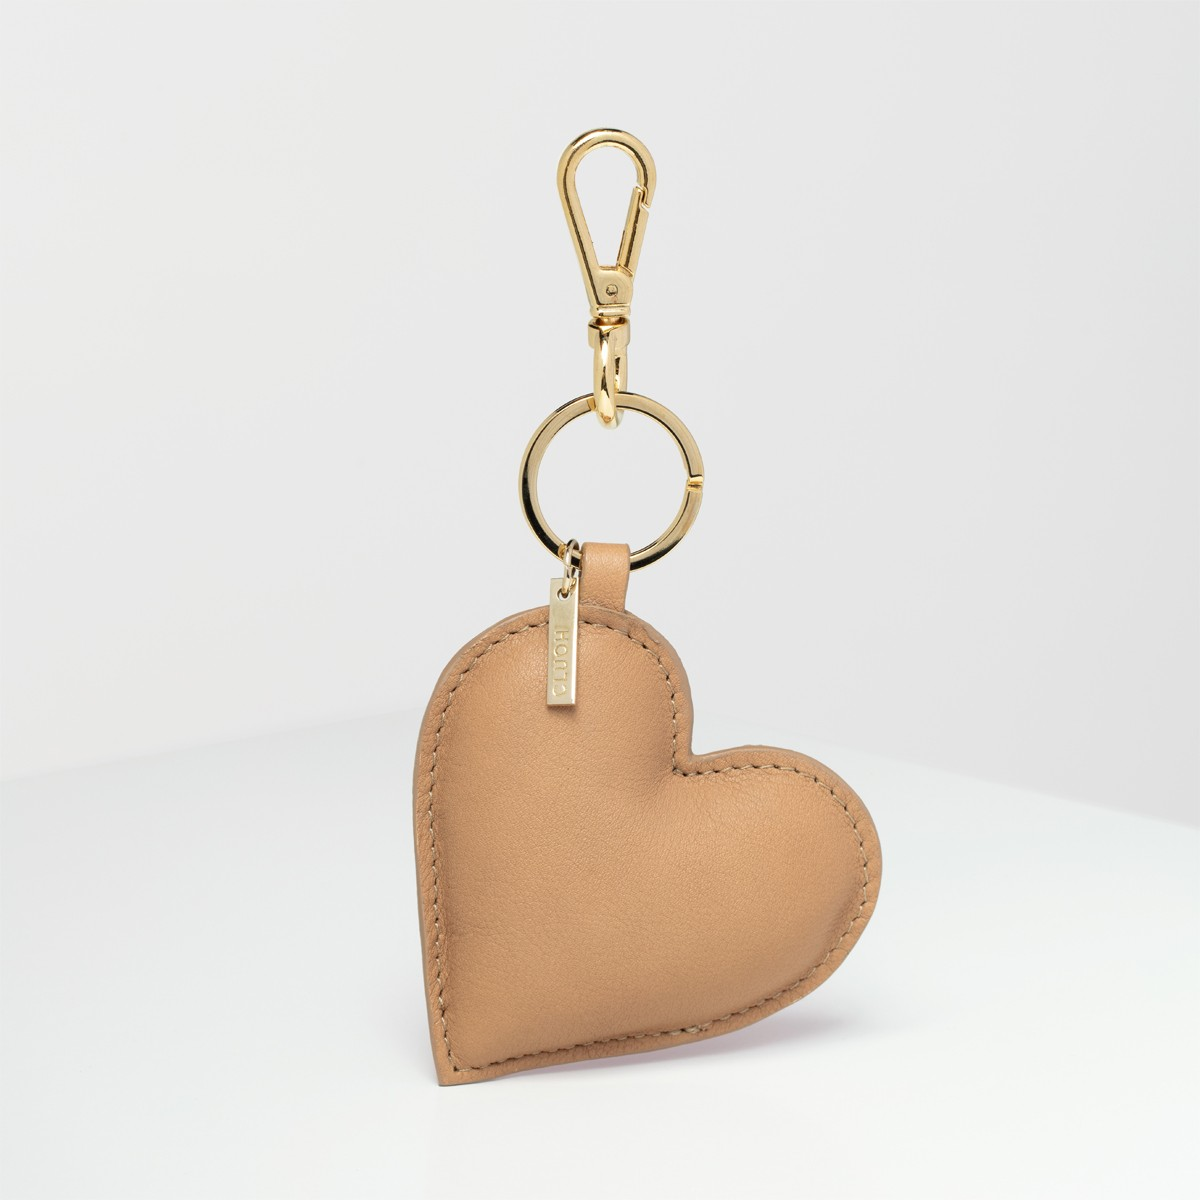 ANDY HEART SAND